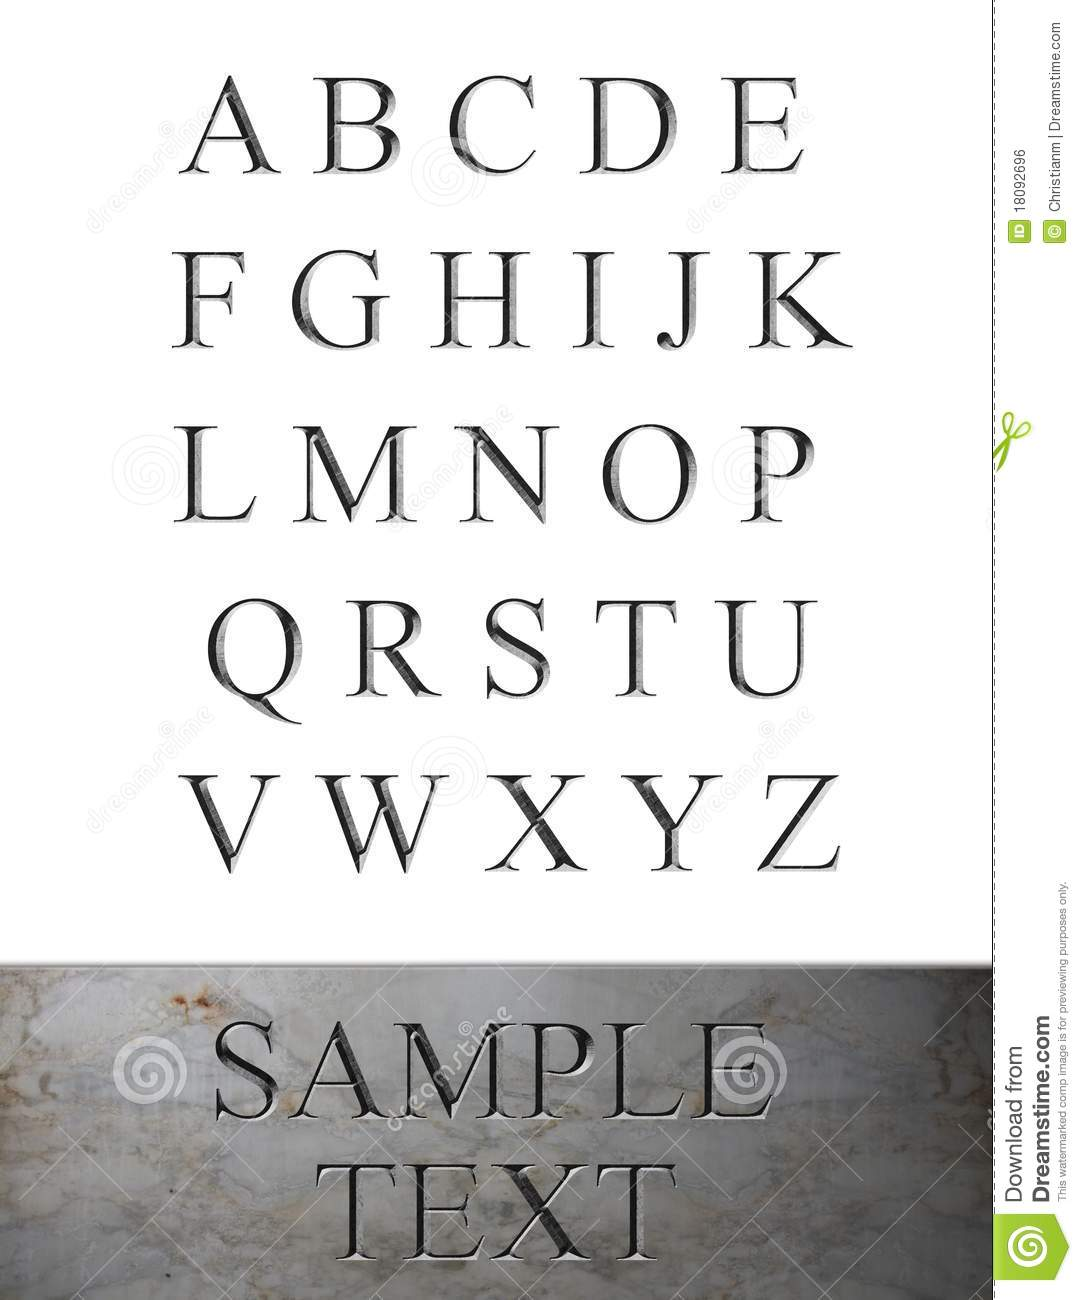 marble engraved alphabet royalty free stock image image tombstone logo vector realistic tombstone vector